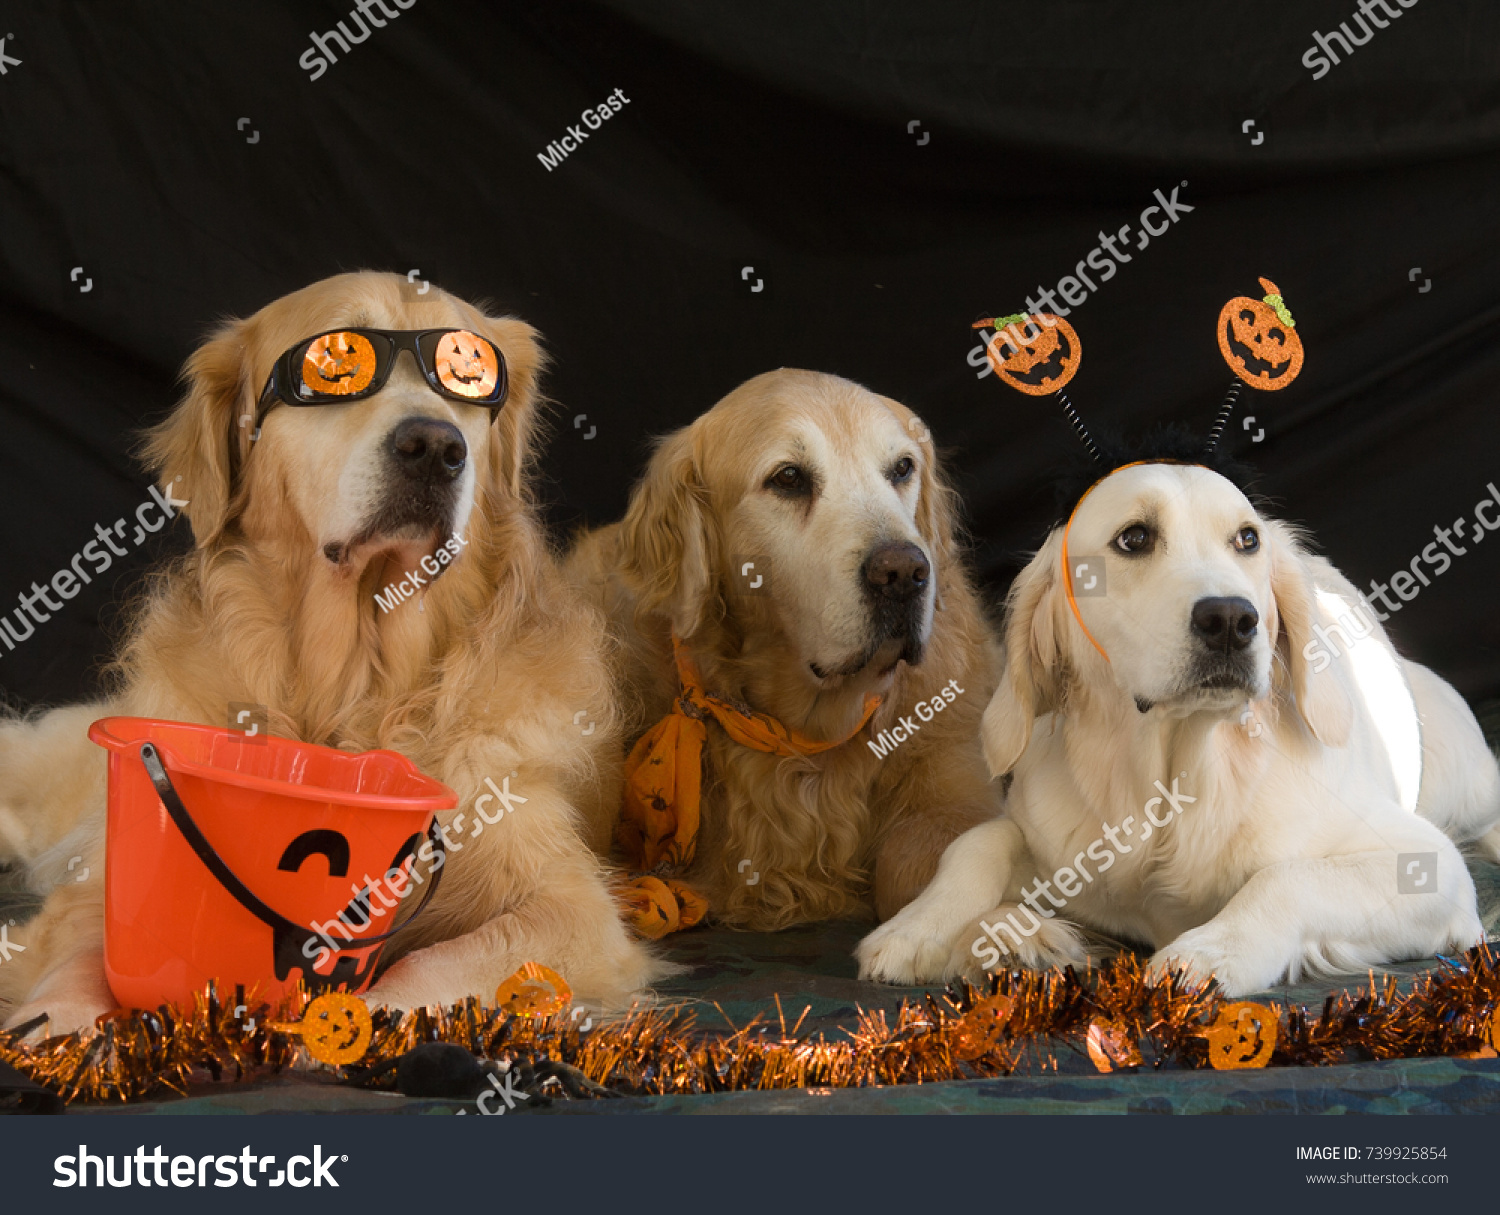 golden retrievers holiday spirit dressed halloween stock photo (edit